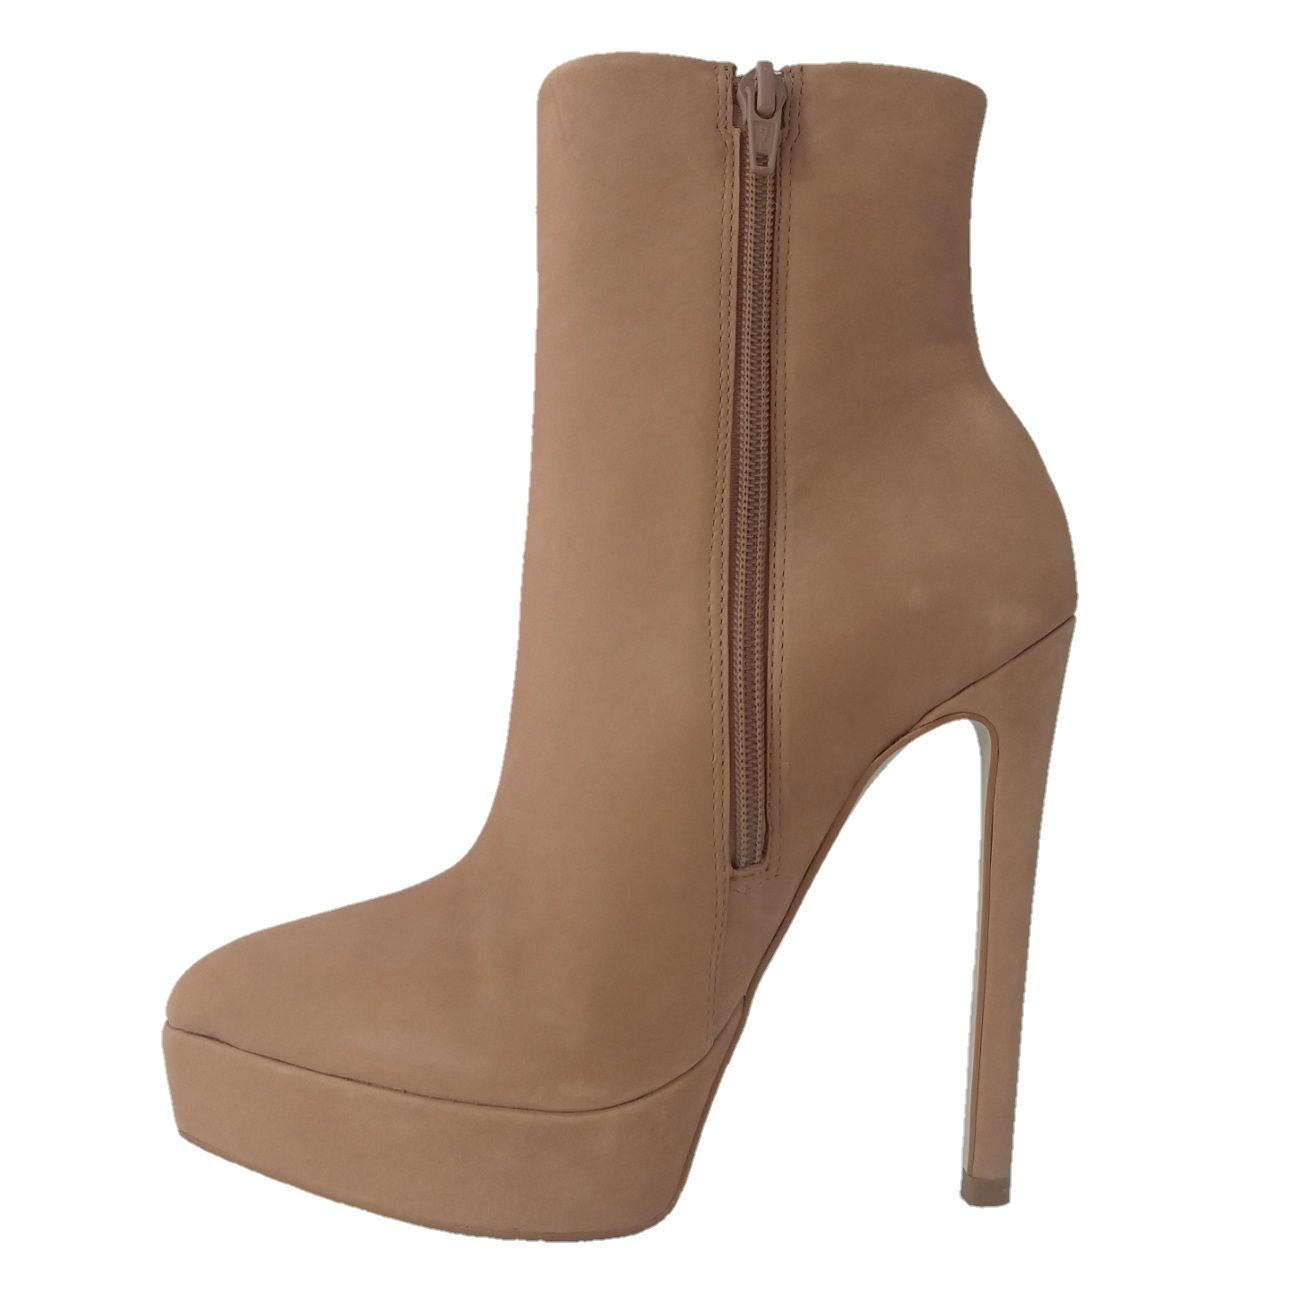 Ankle Boot Plataforma TopGrife Couro Bege  - SAPATOWEB.COM